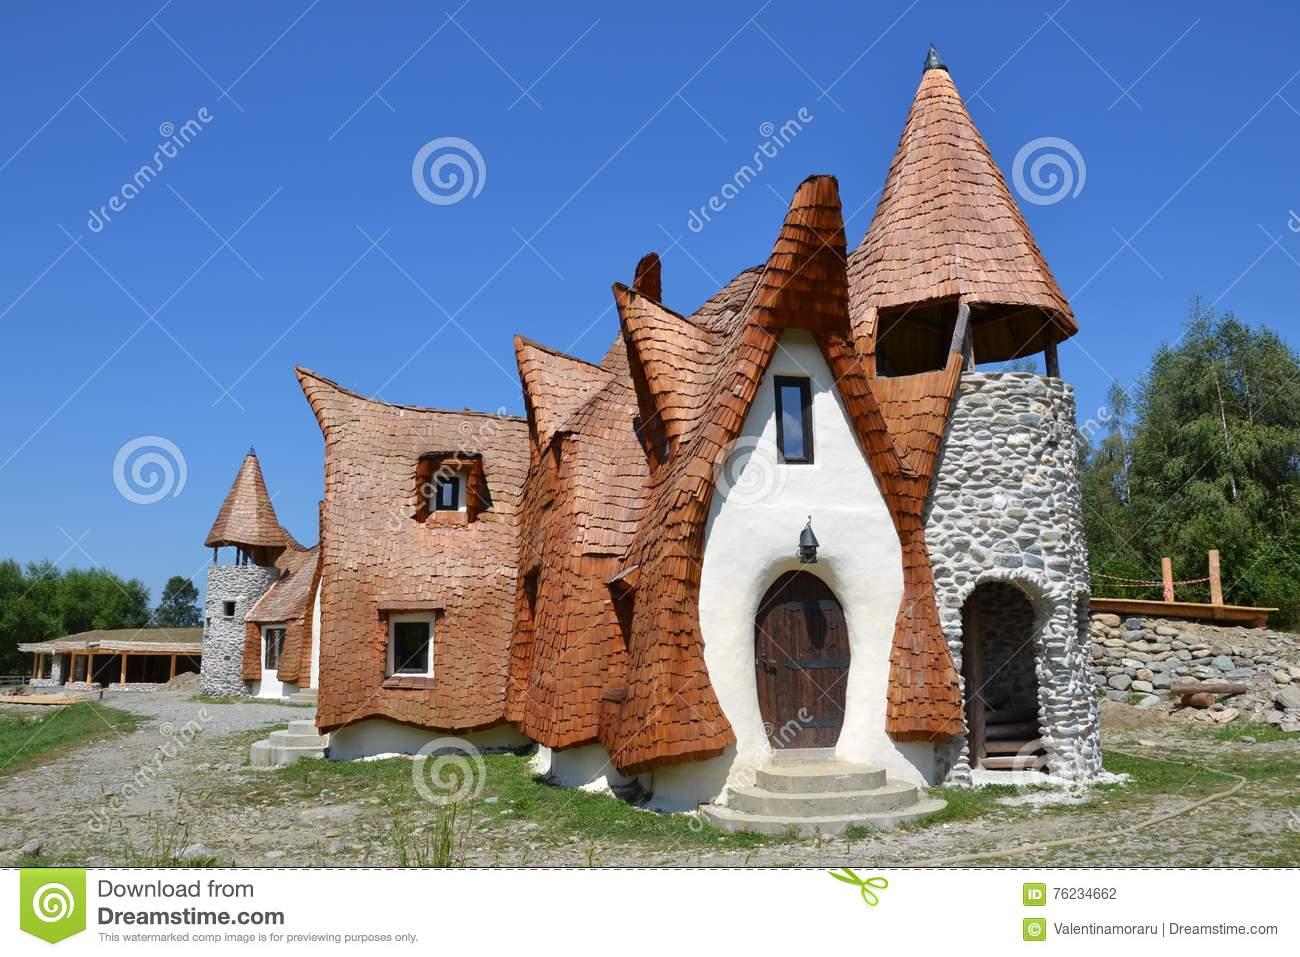 The clay castle